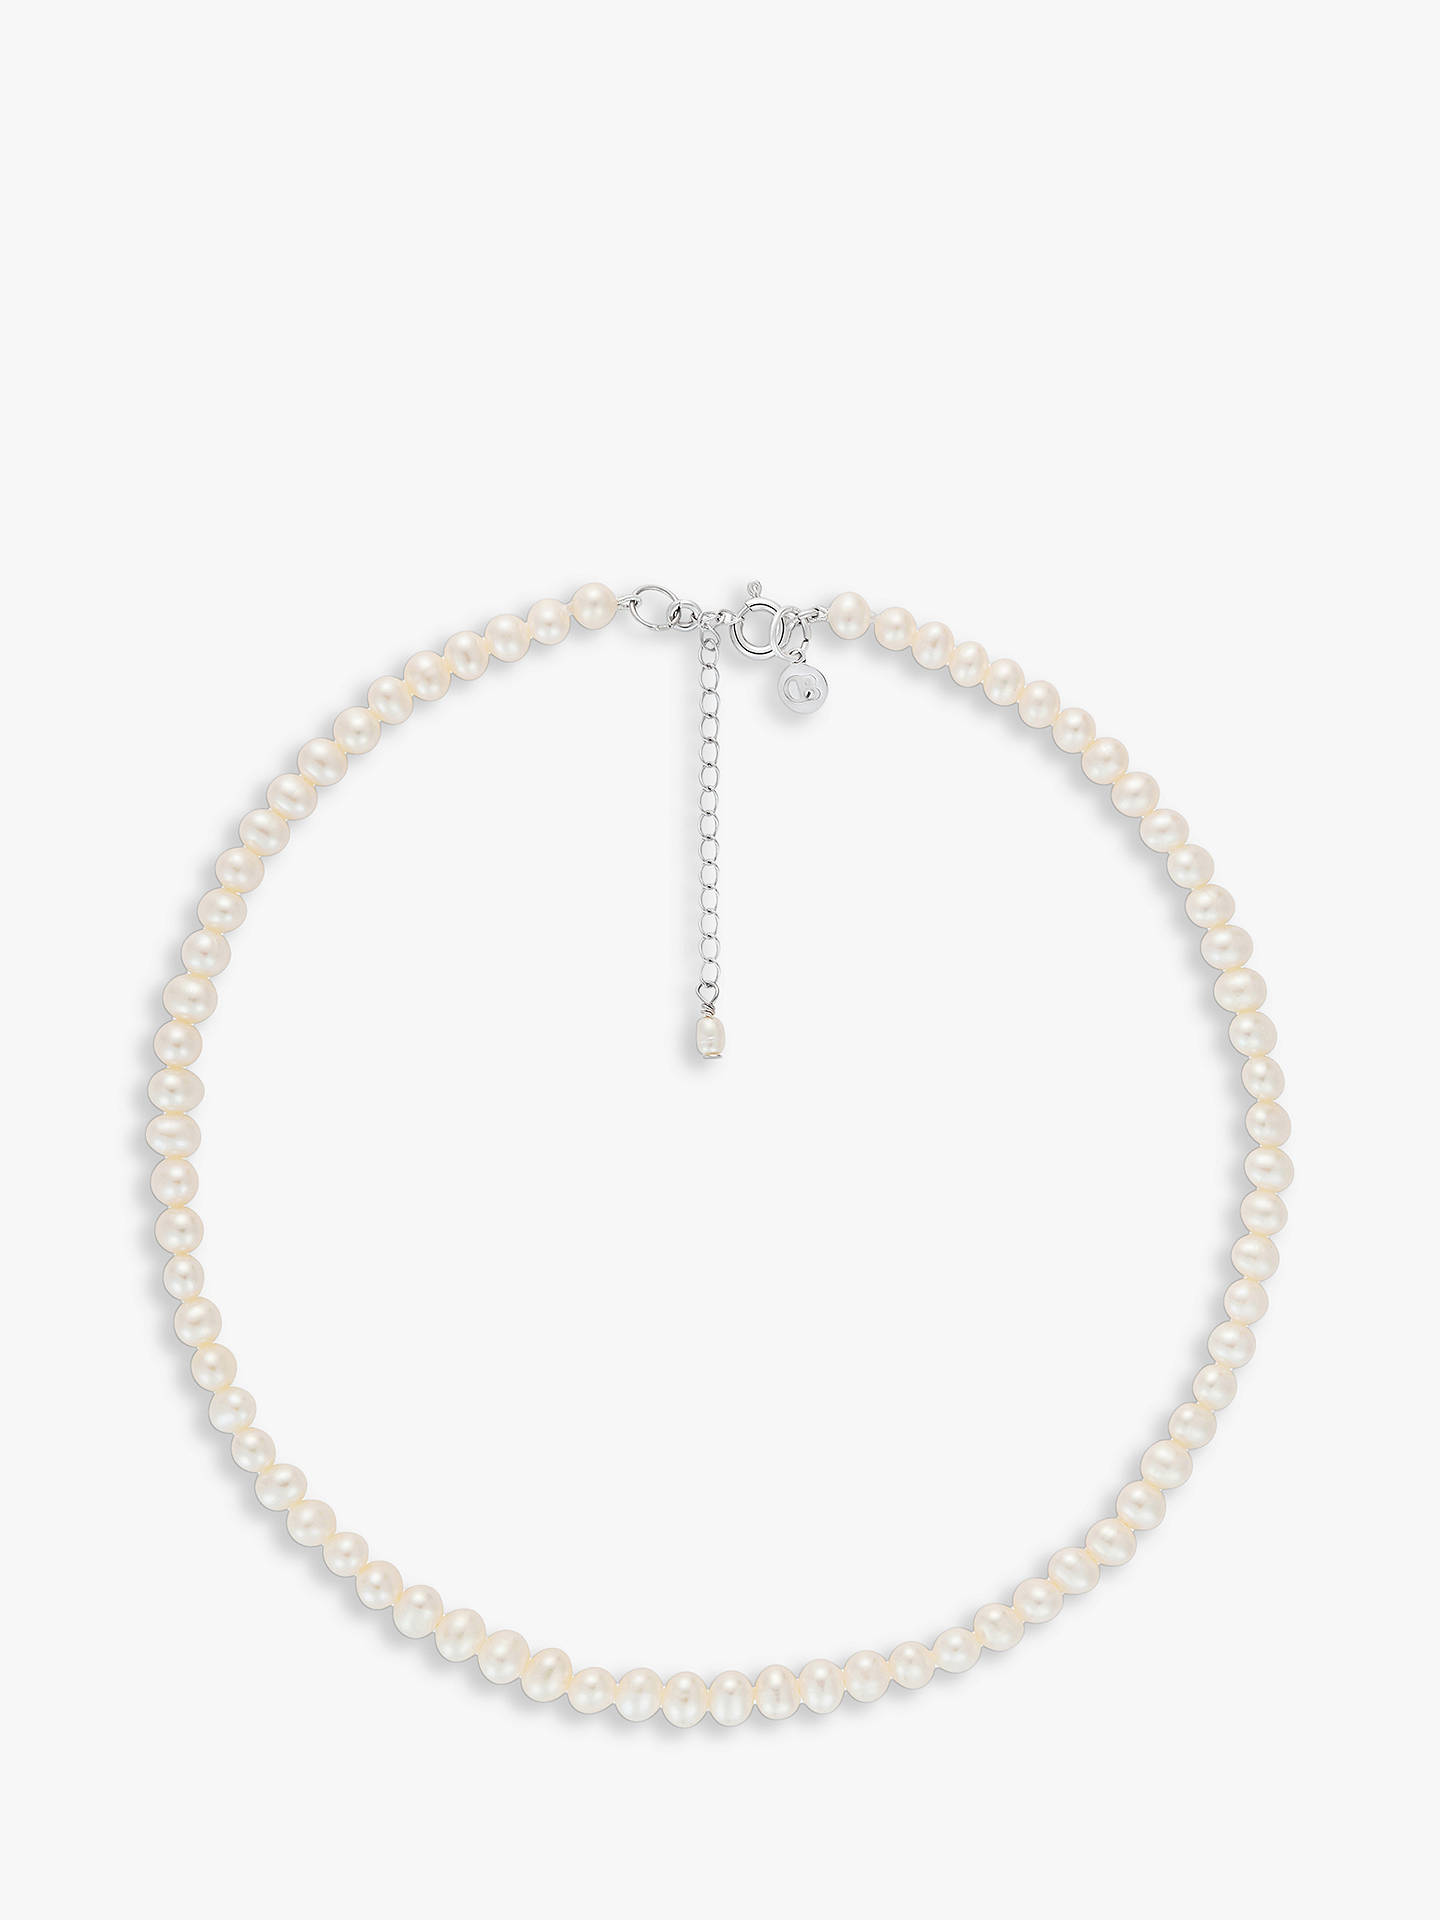 BuyClaudia Bradby Sterling Silver Freshwater Pearl Collar Necklace, White Online at johnlewis.com